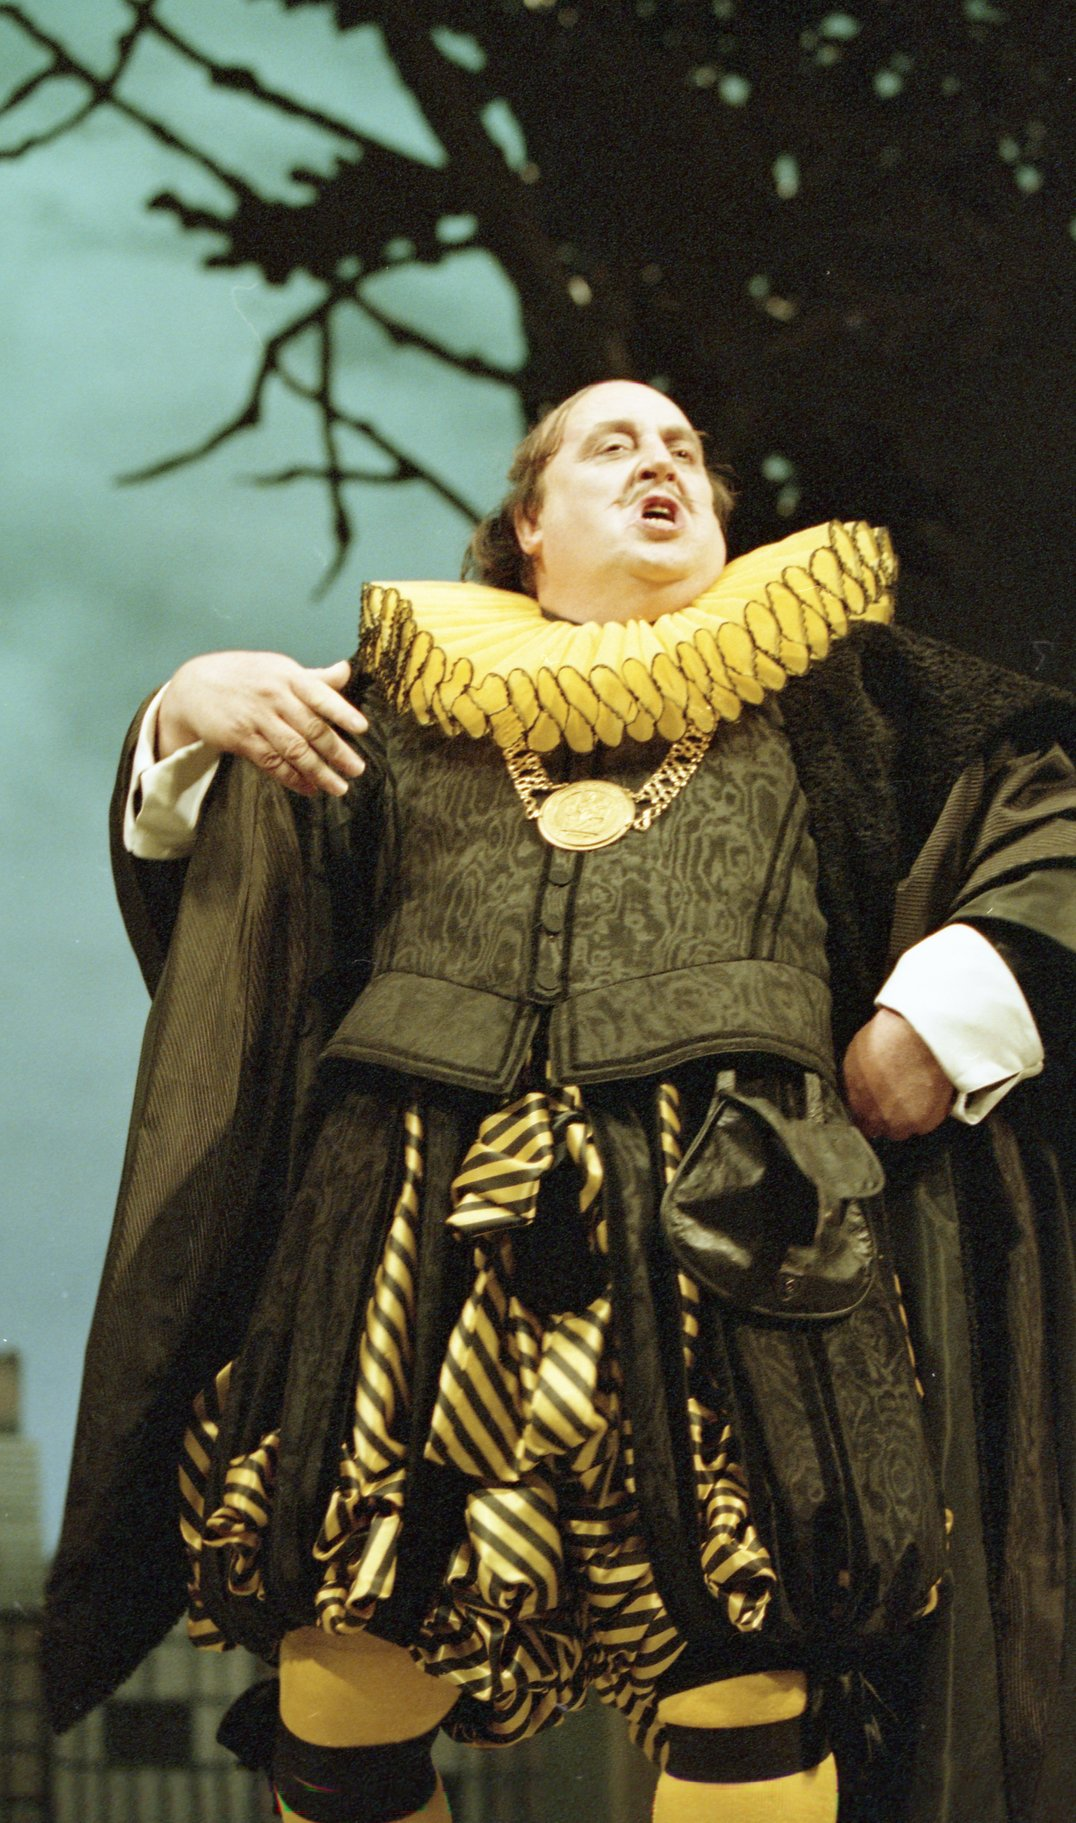 Malvolio standing in yellow stockings, with his left hand on his hip